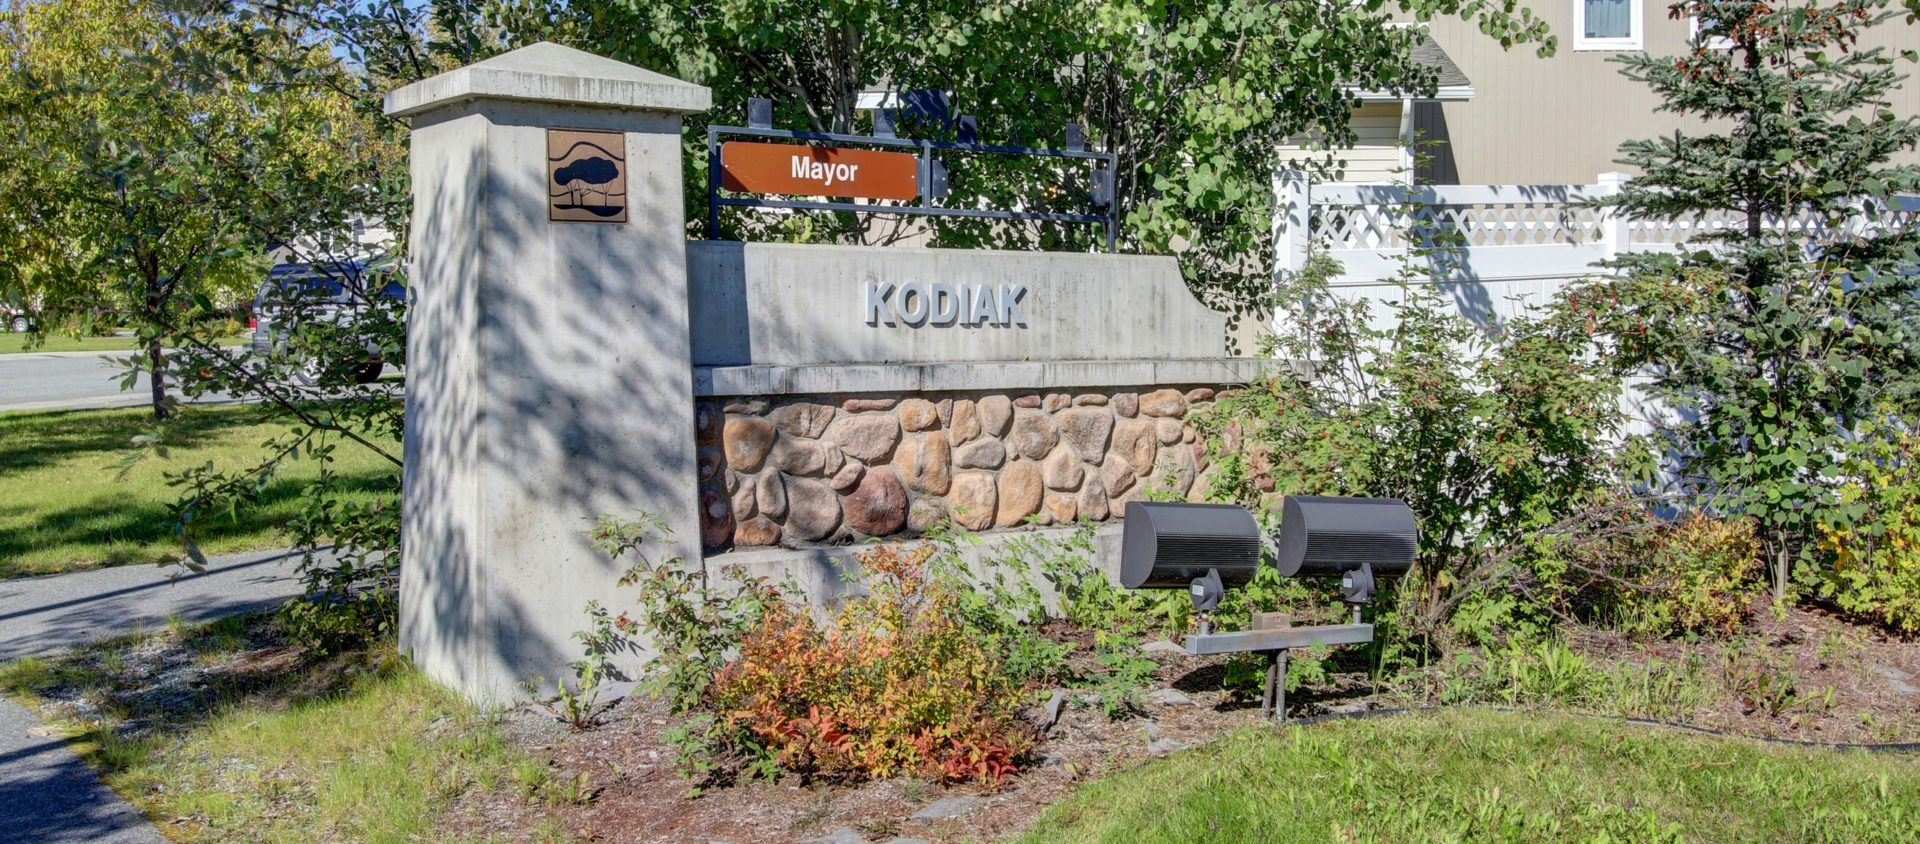 JBER's Kodiak neighborhood entrance sign